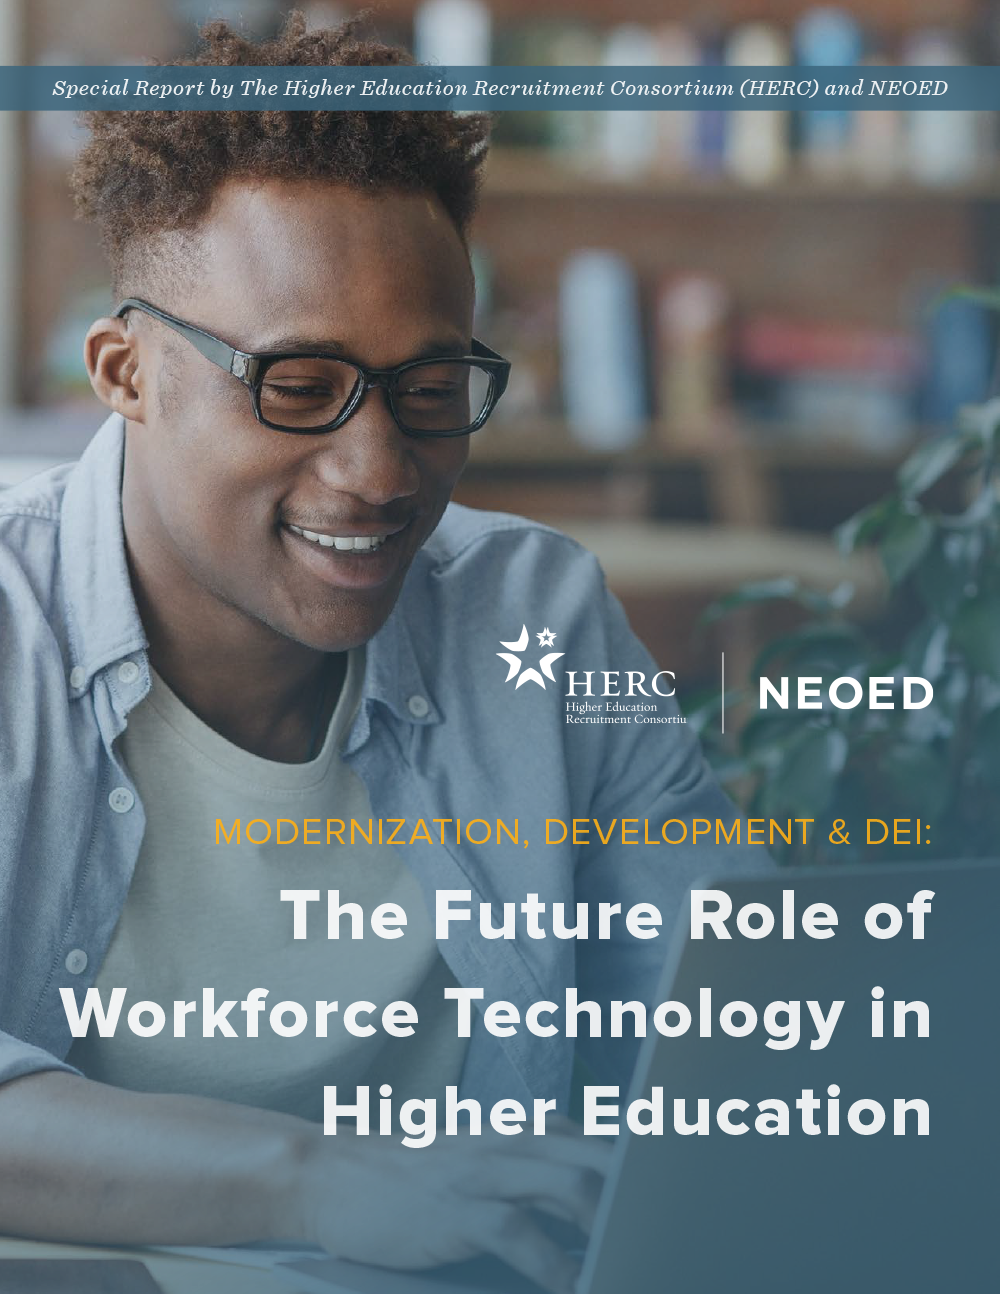 NEOED-HERC-Report-Technology-Higher-Education-HR-thumb